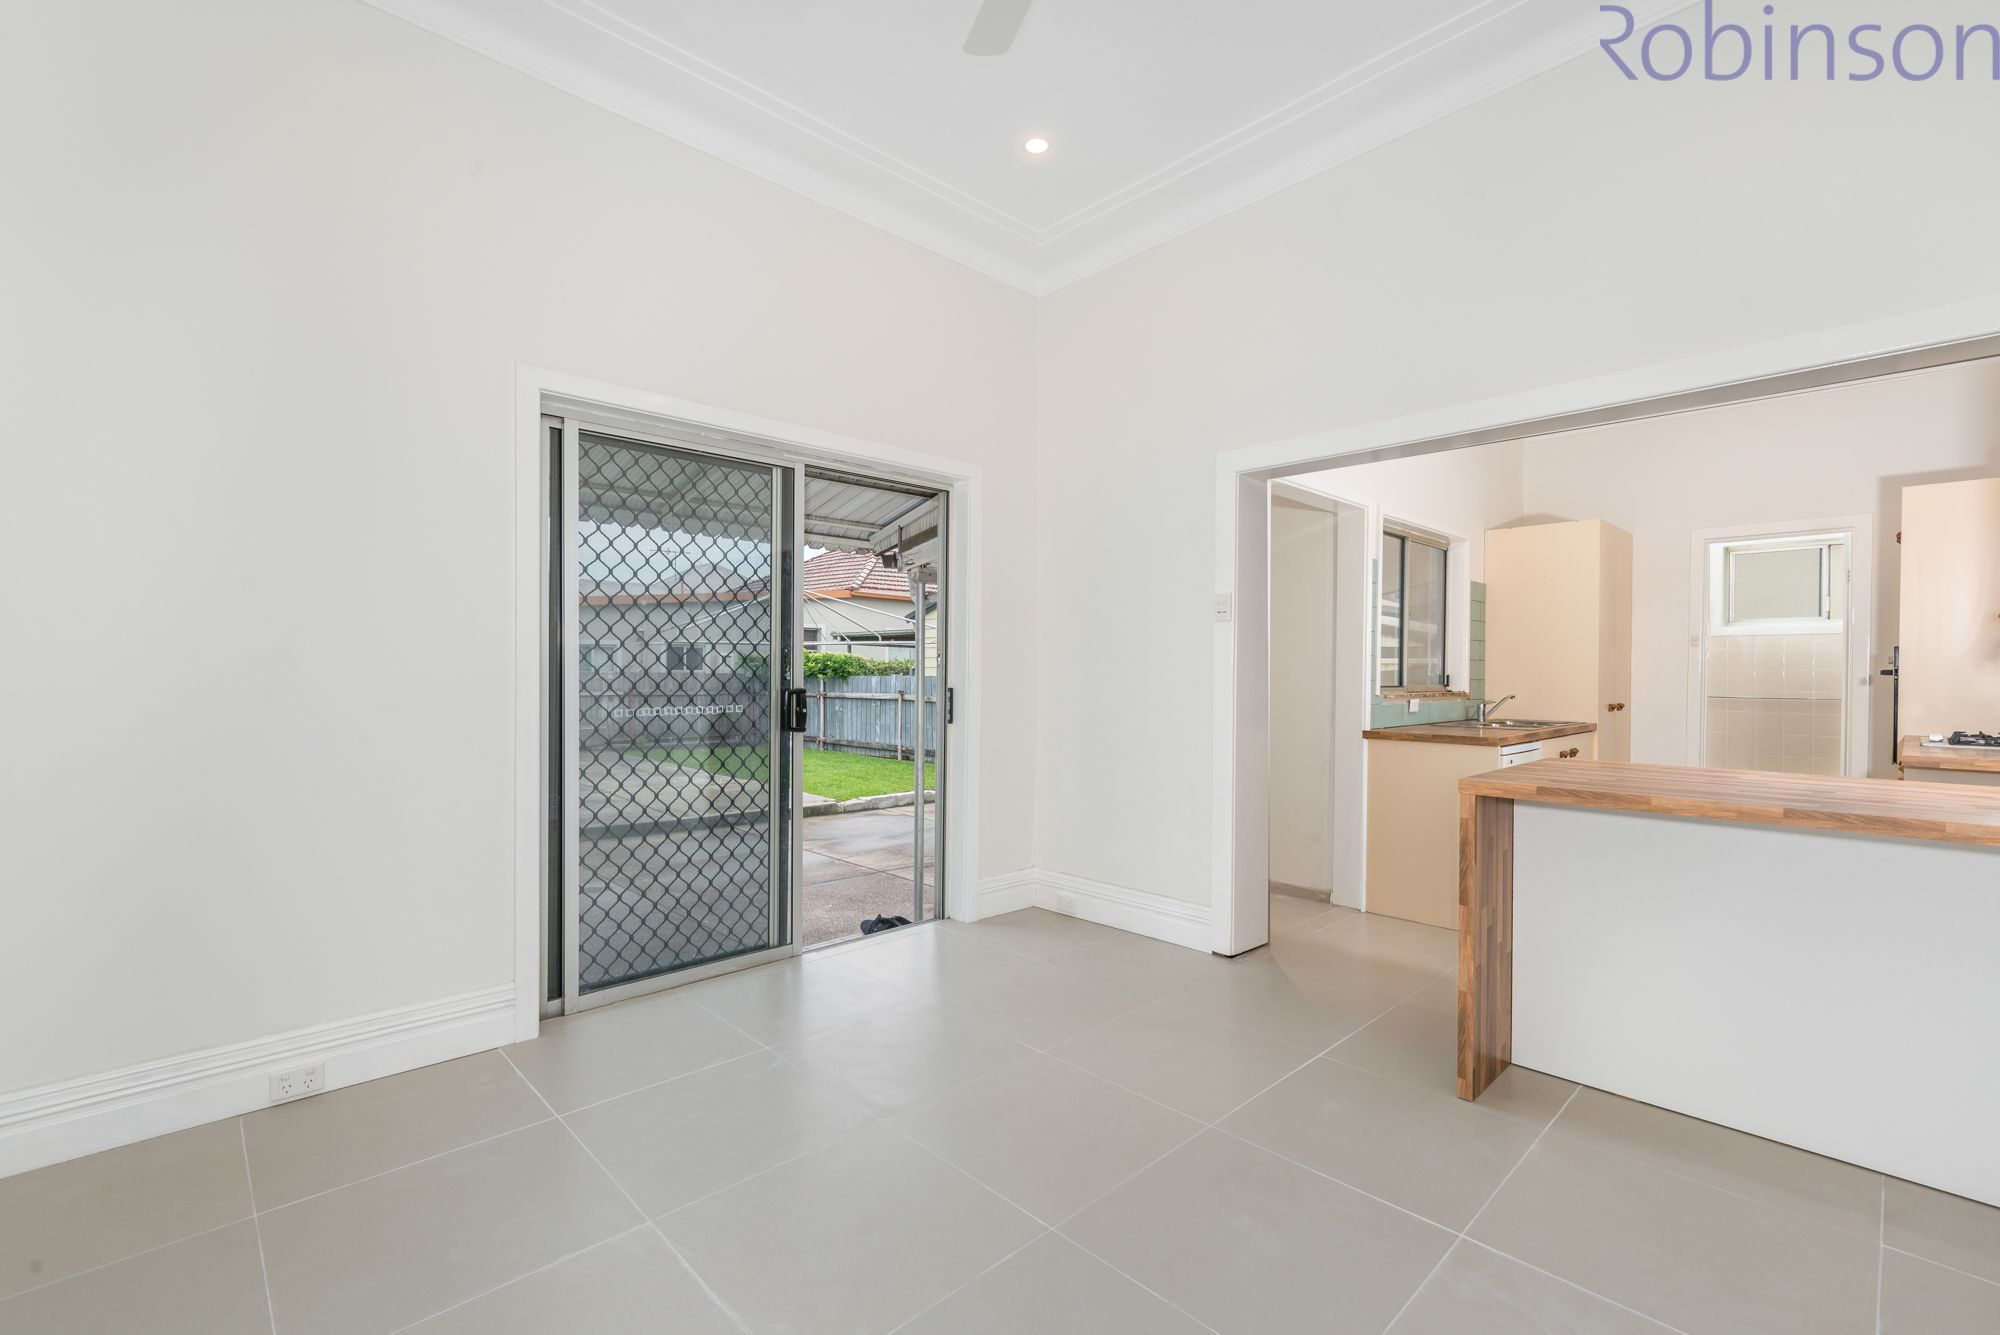 24 Mounter Street, Mayfield East